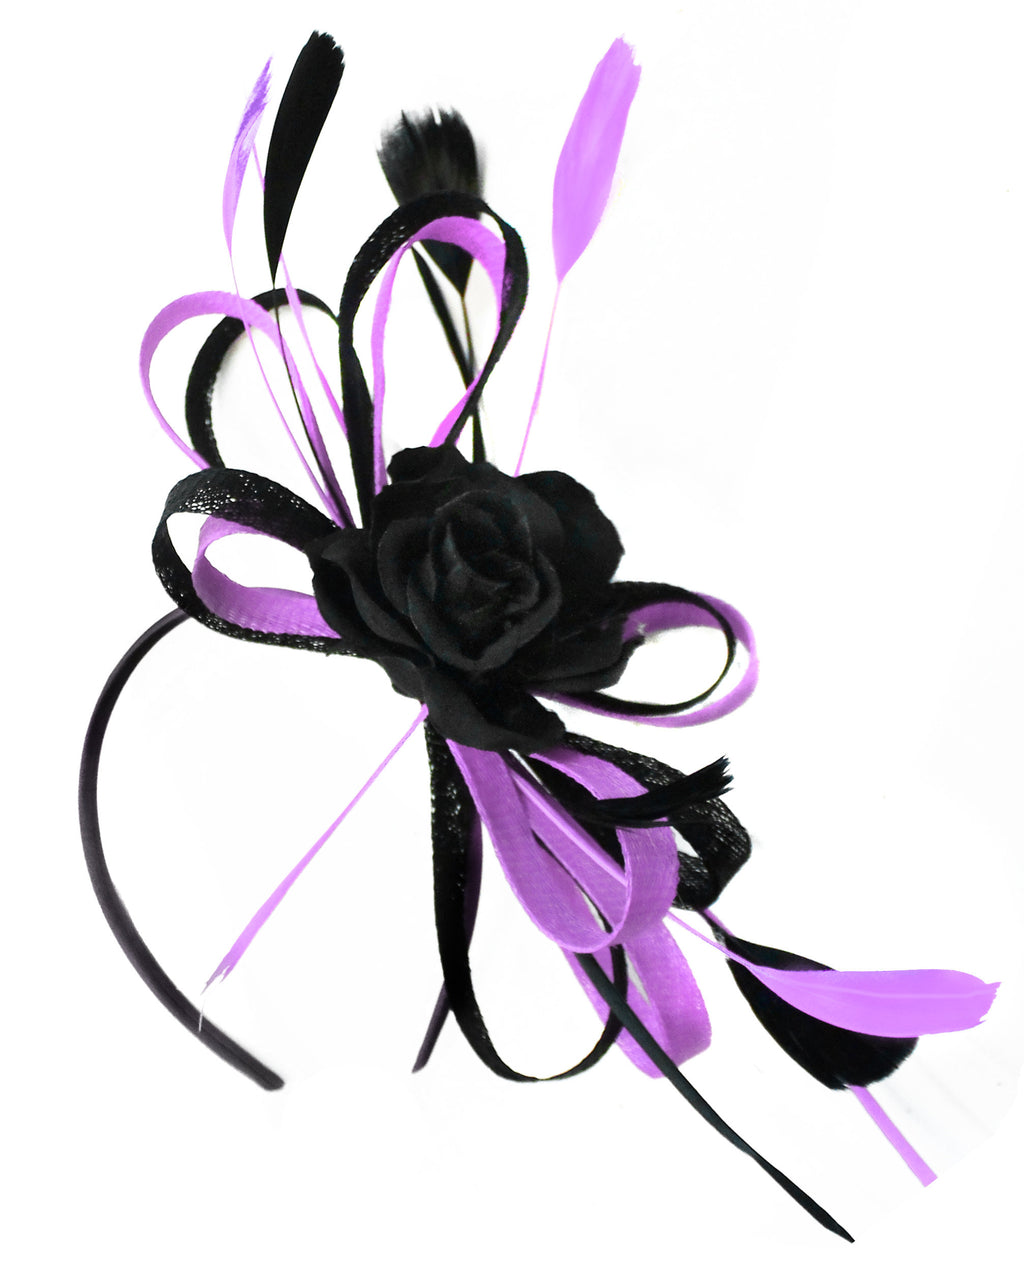 Caprilite Sinamay Rose Black and Lavender Lilac Light Purple Fascinator on Headband Alice Band UK Wedding Ascot Races Loop